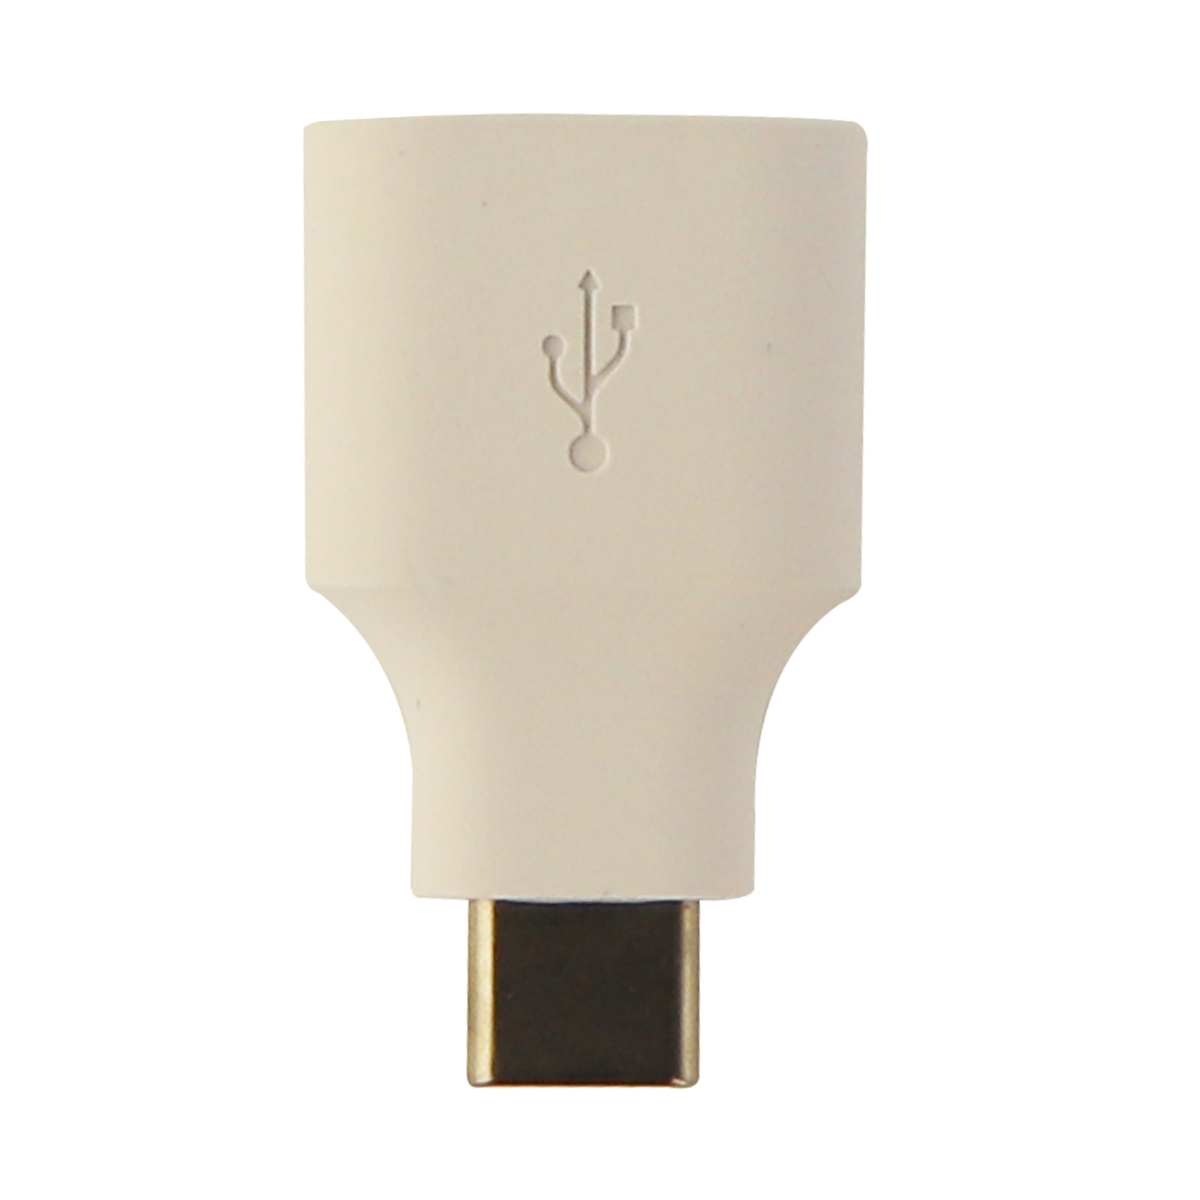 Universal USB to USB-C (Type C) Short Adapter for USB-C Devices S8 Pixel - White